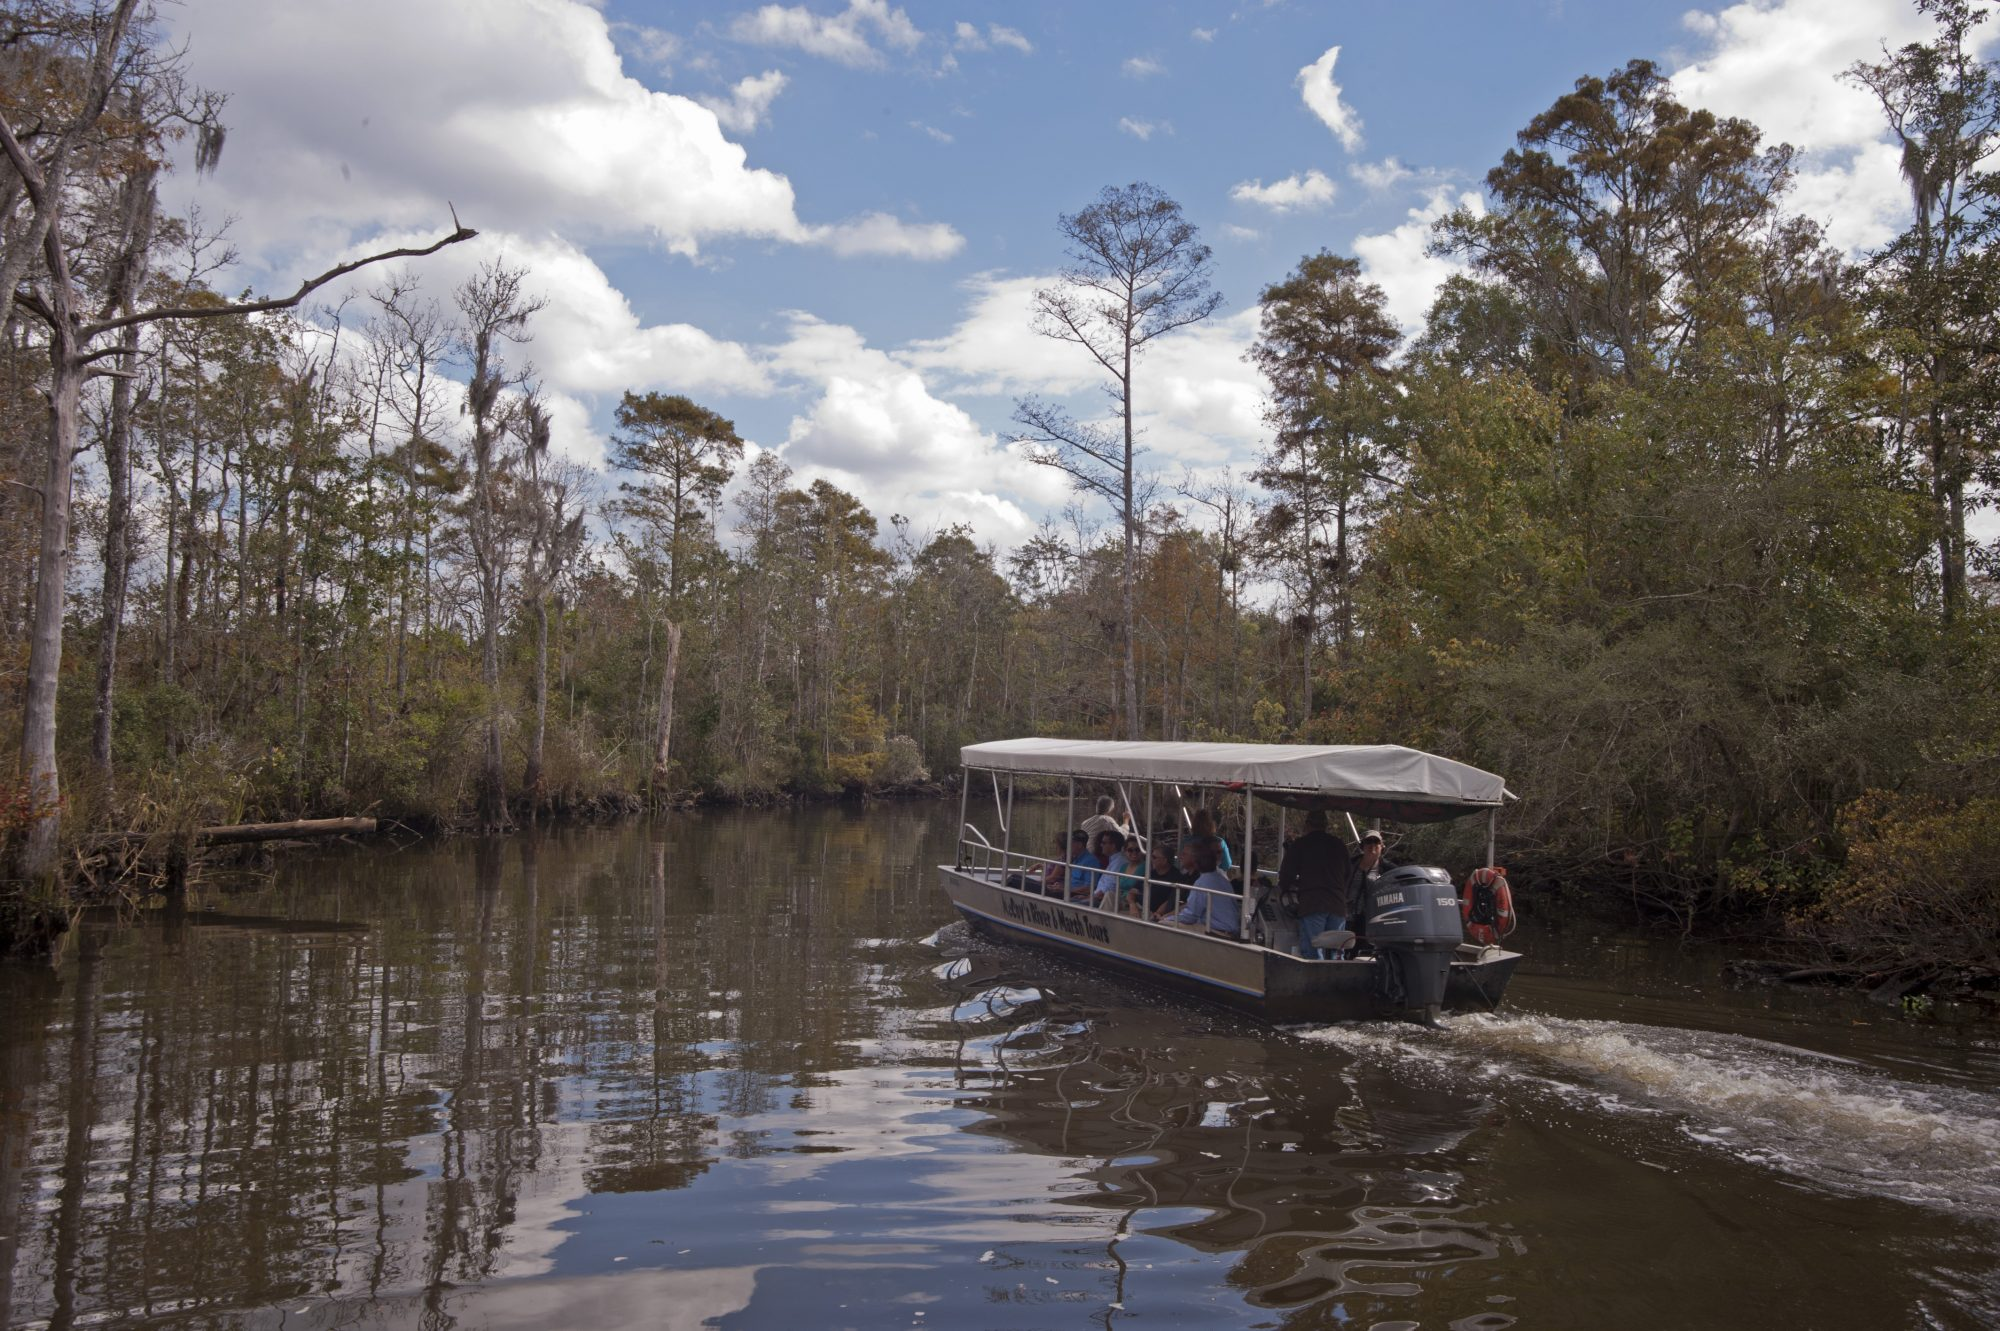 McCoy's River & Swamp Tours (Moss Point, Mississippi)